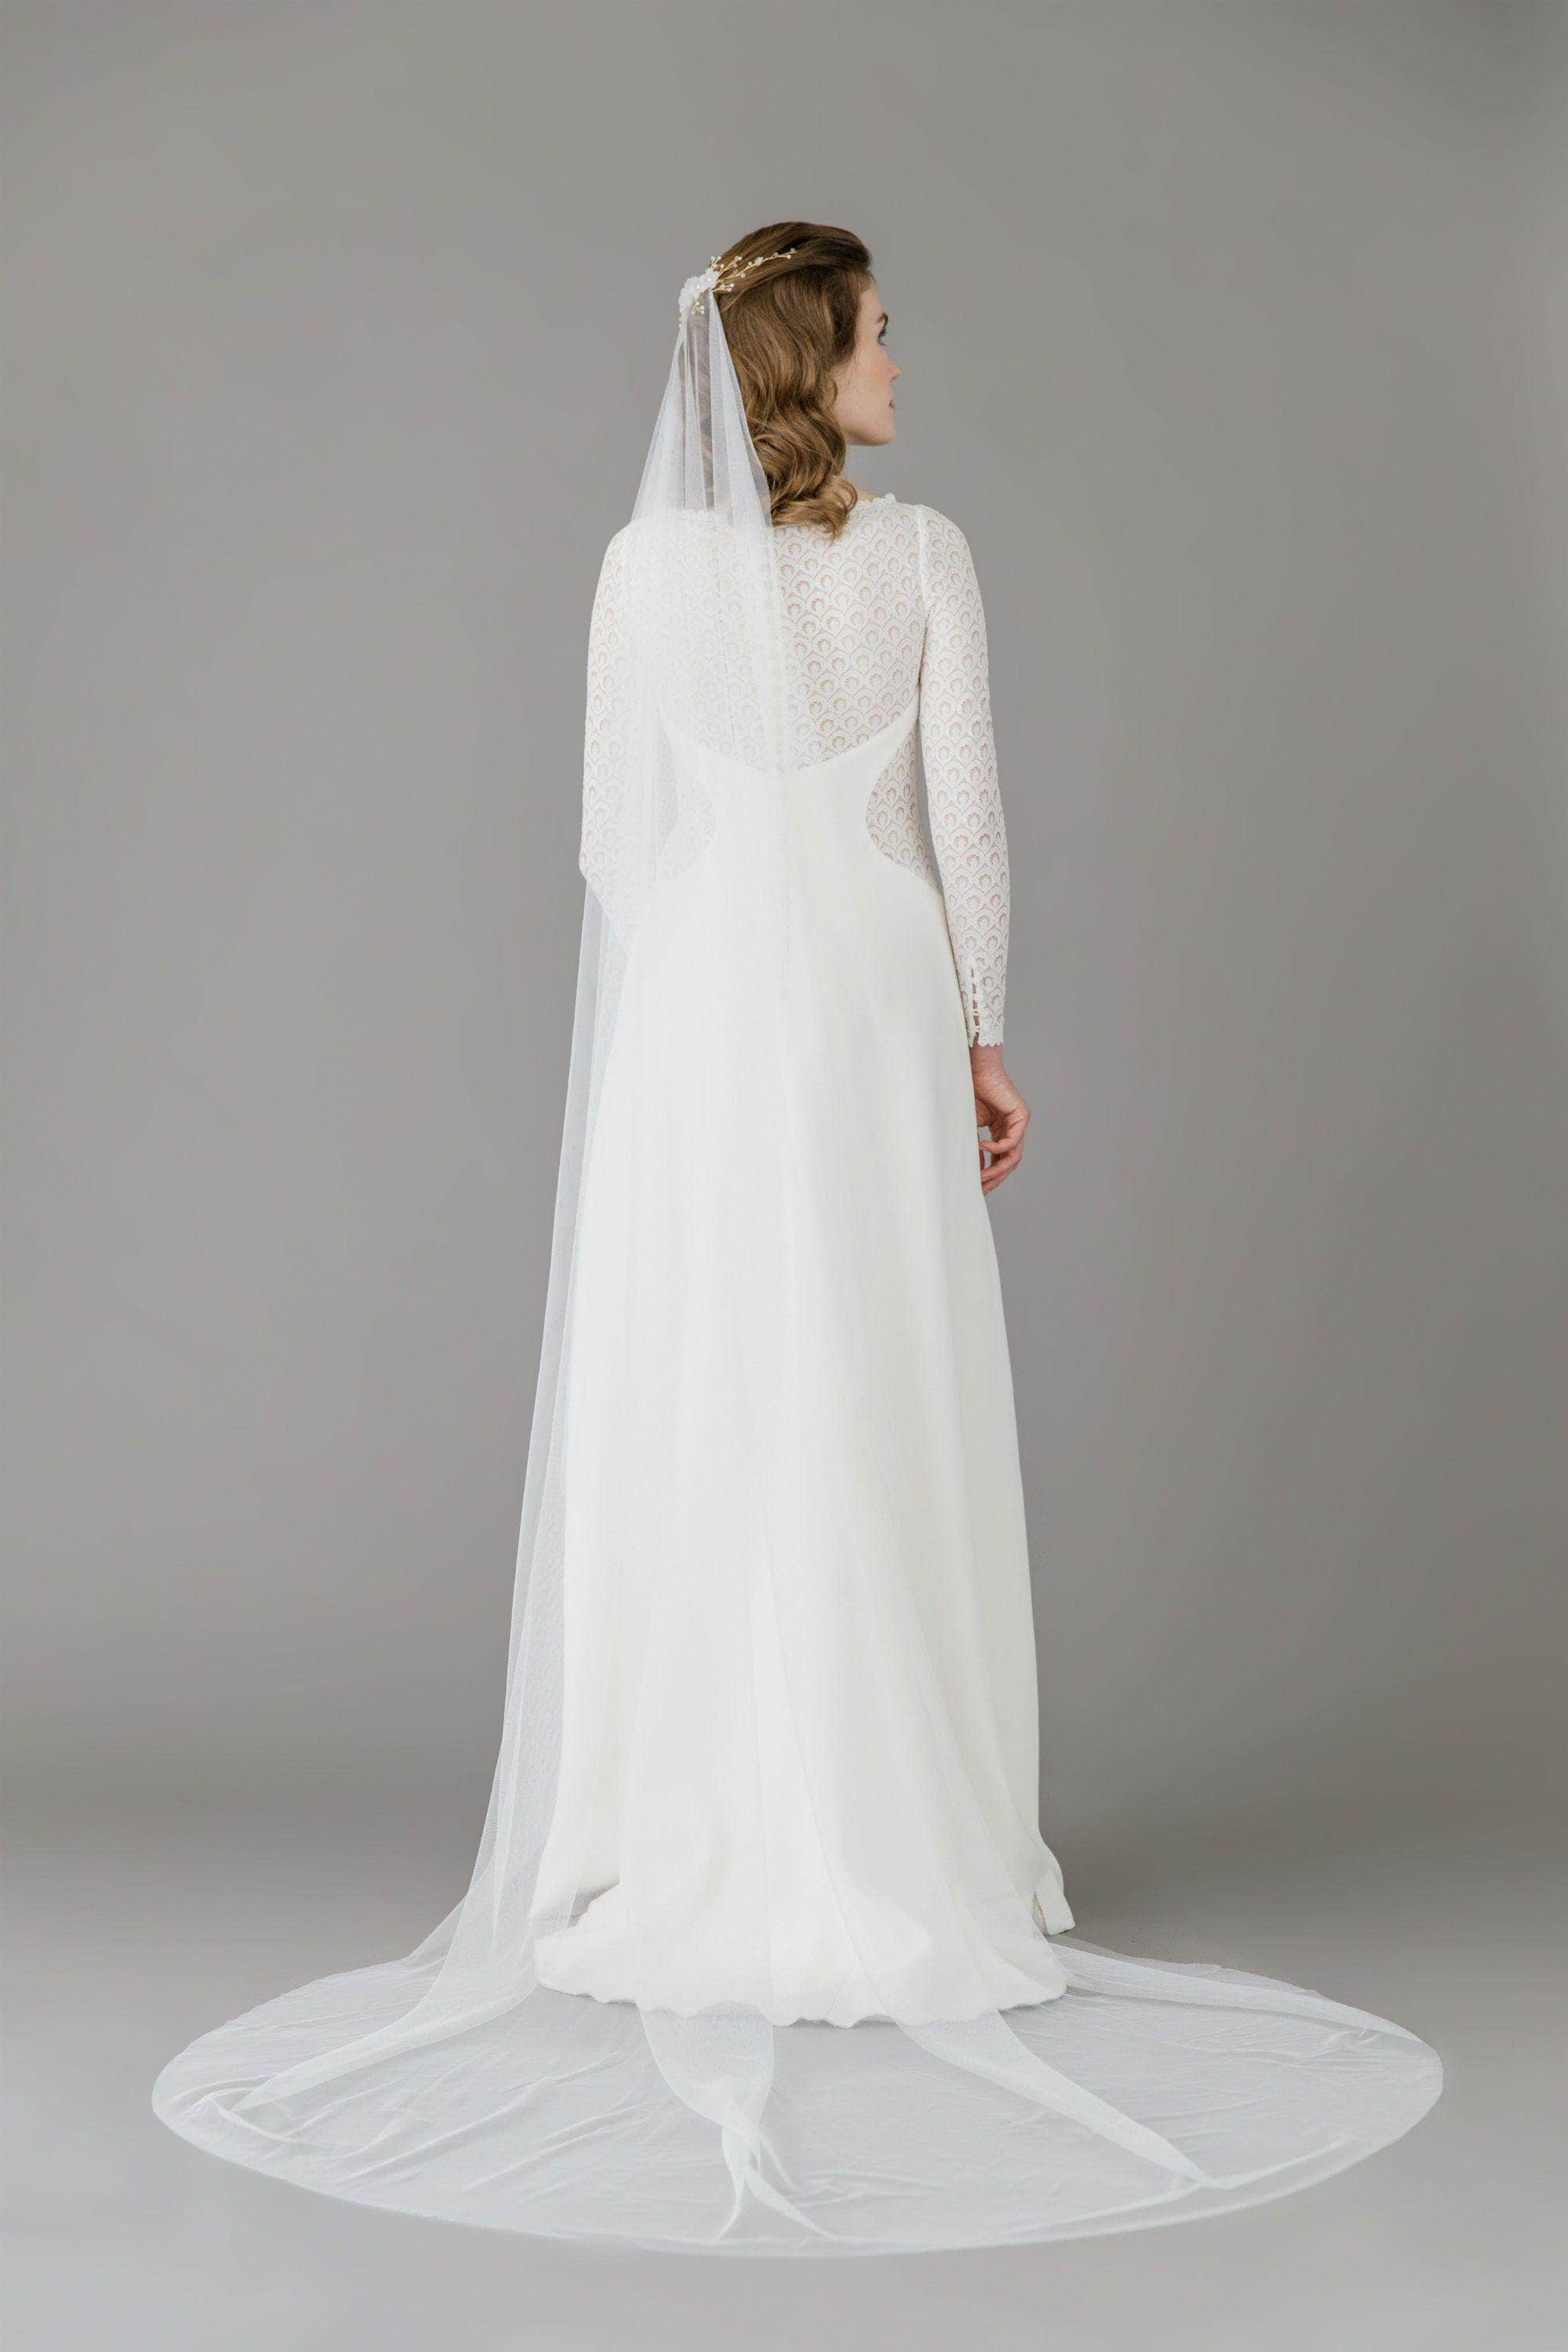 Silk style barely there wedding veil - 'Ilona'